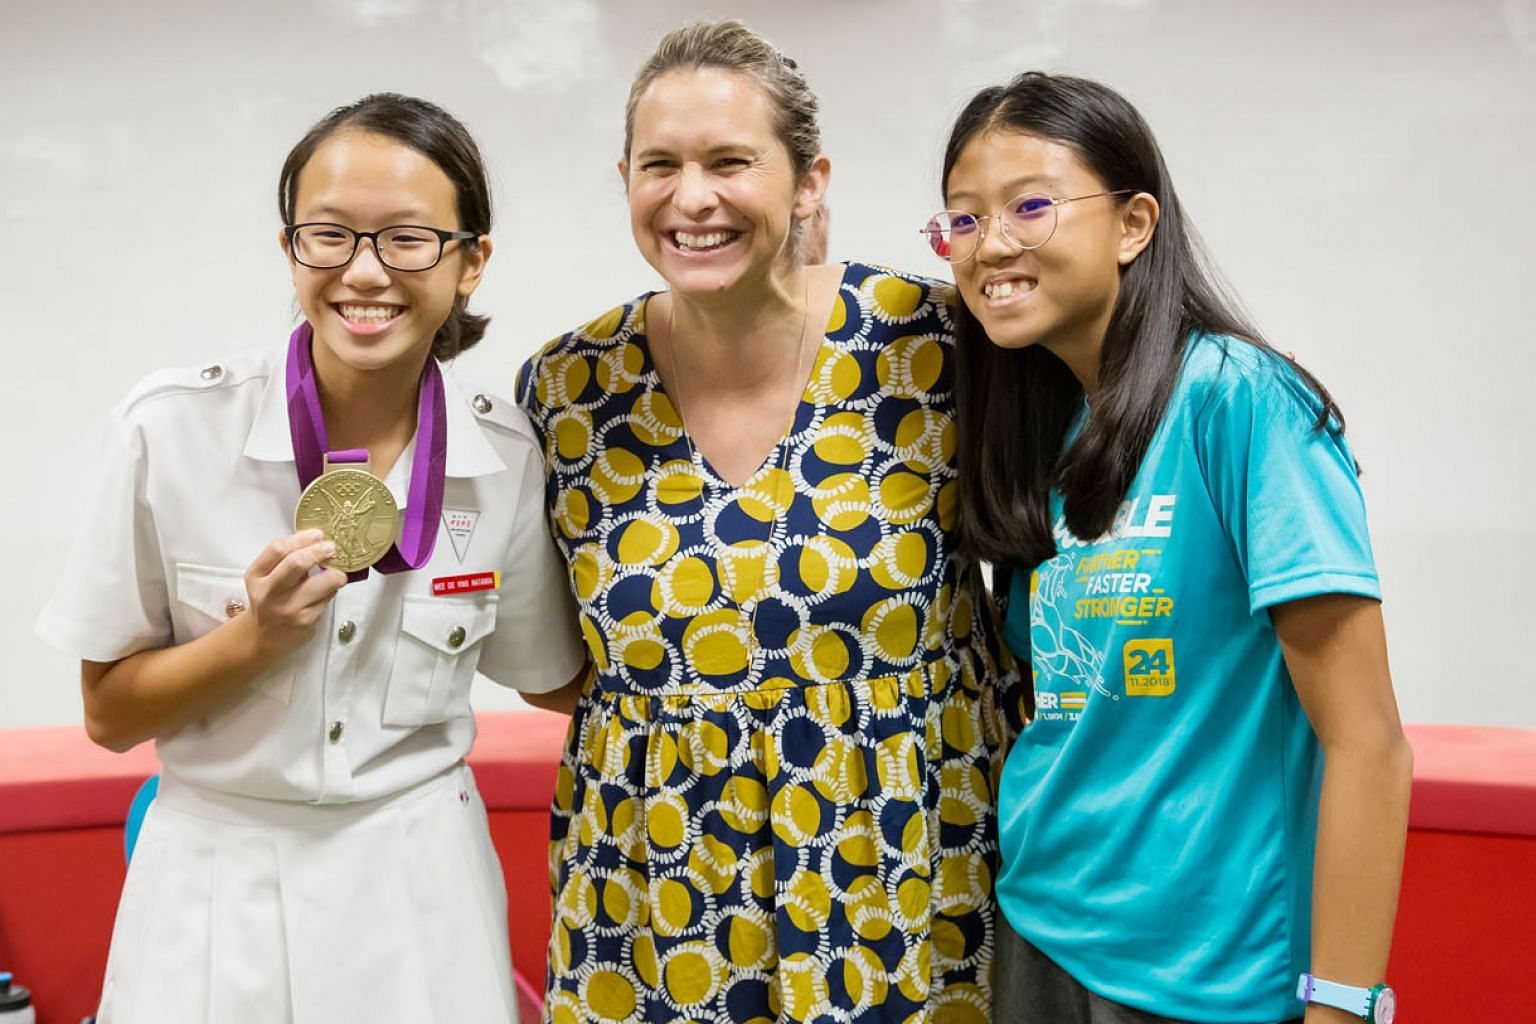 Four-time Olympic champion Libby Trickett with a pair of young athletes at the National Youth Sports Institute yesterday. The Australian was speaking to young swimmers at a sharing session. PHOTO: SINGAPORE OLYMPIC FOUNDATION